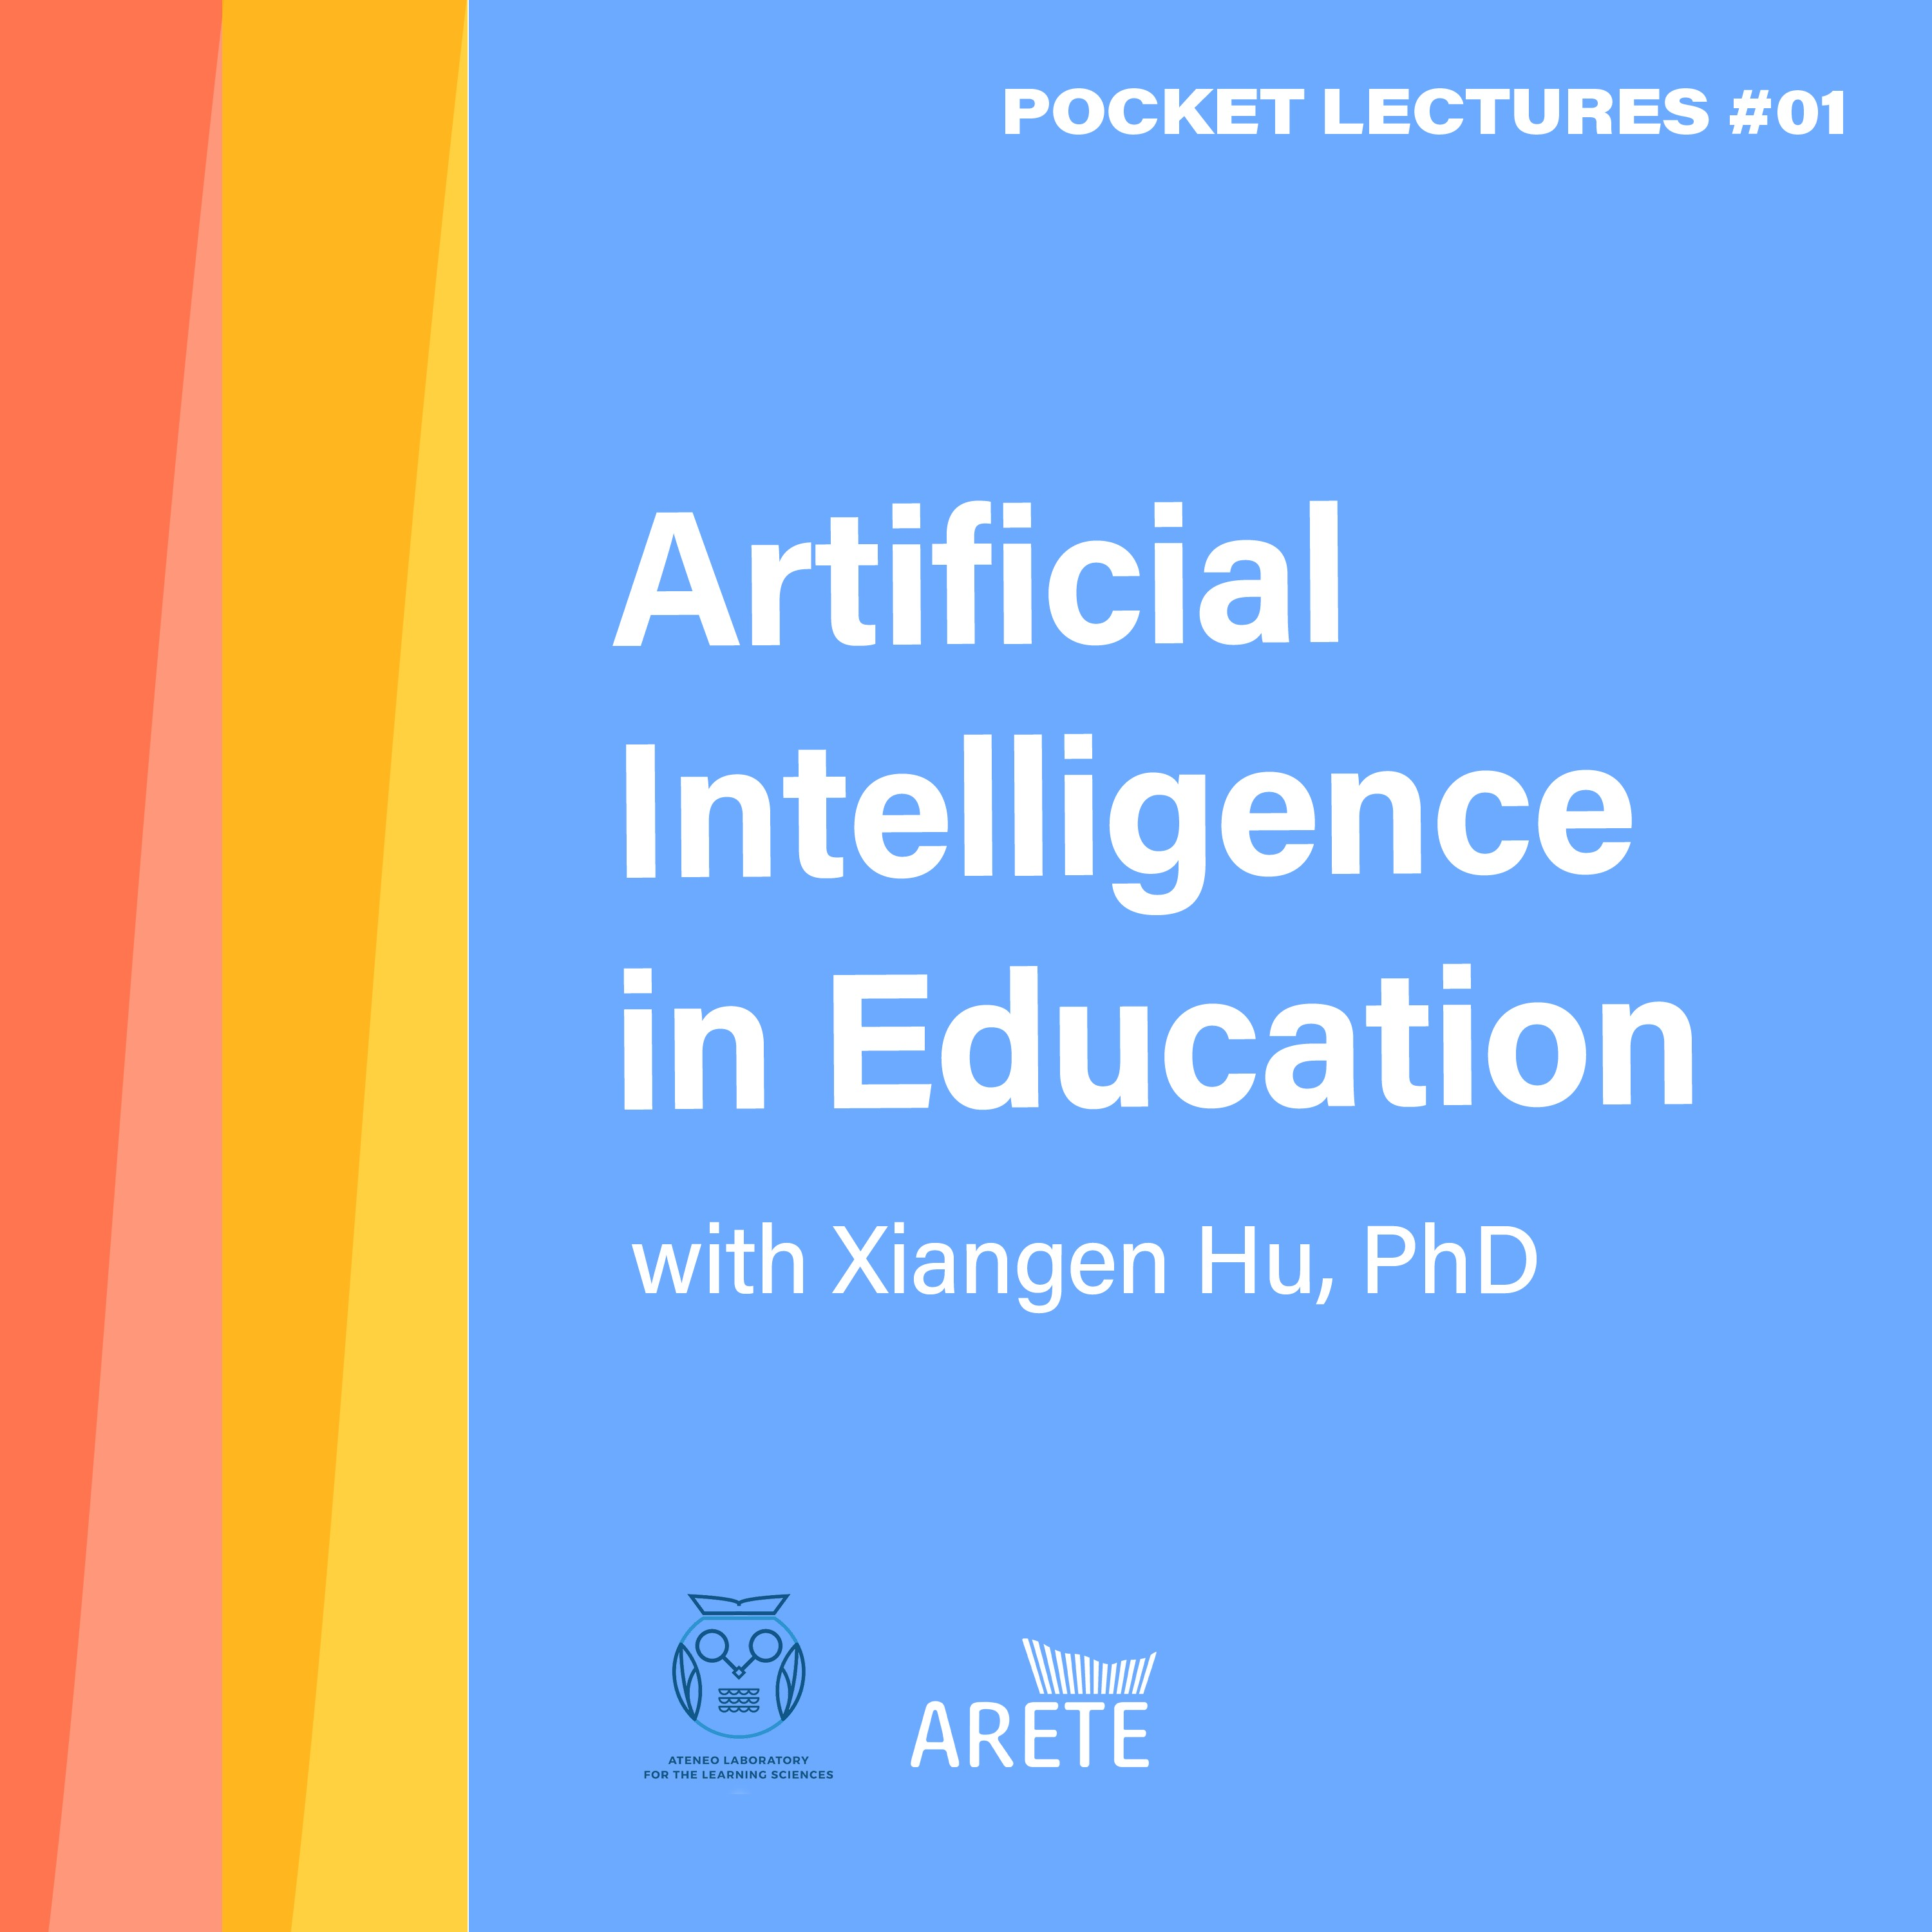 Podcast on Artificial Intelligence on Education by Dr. Xiangen Hu